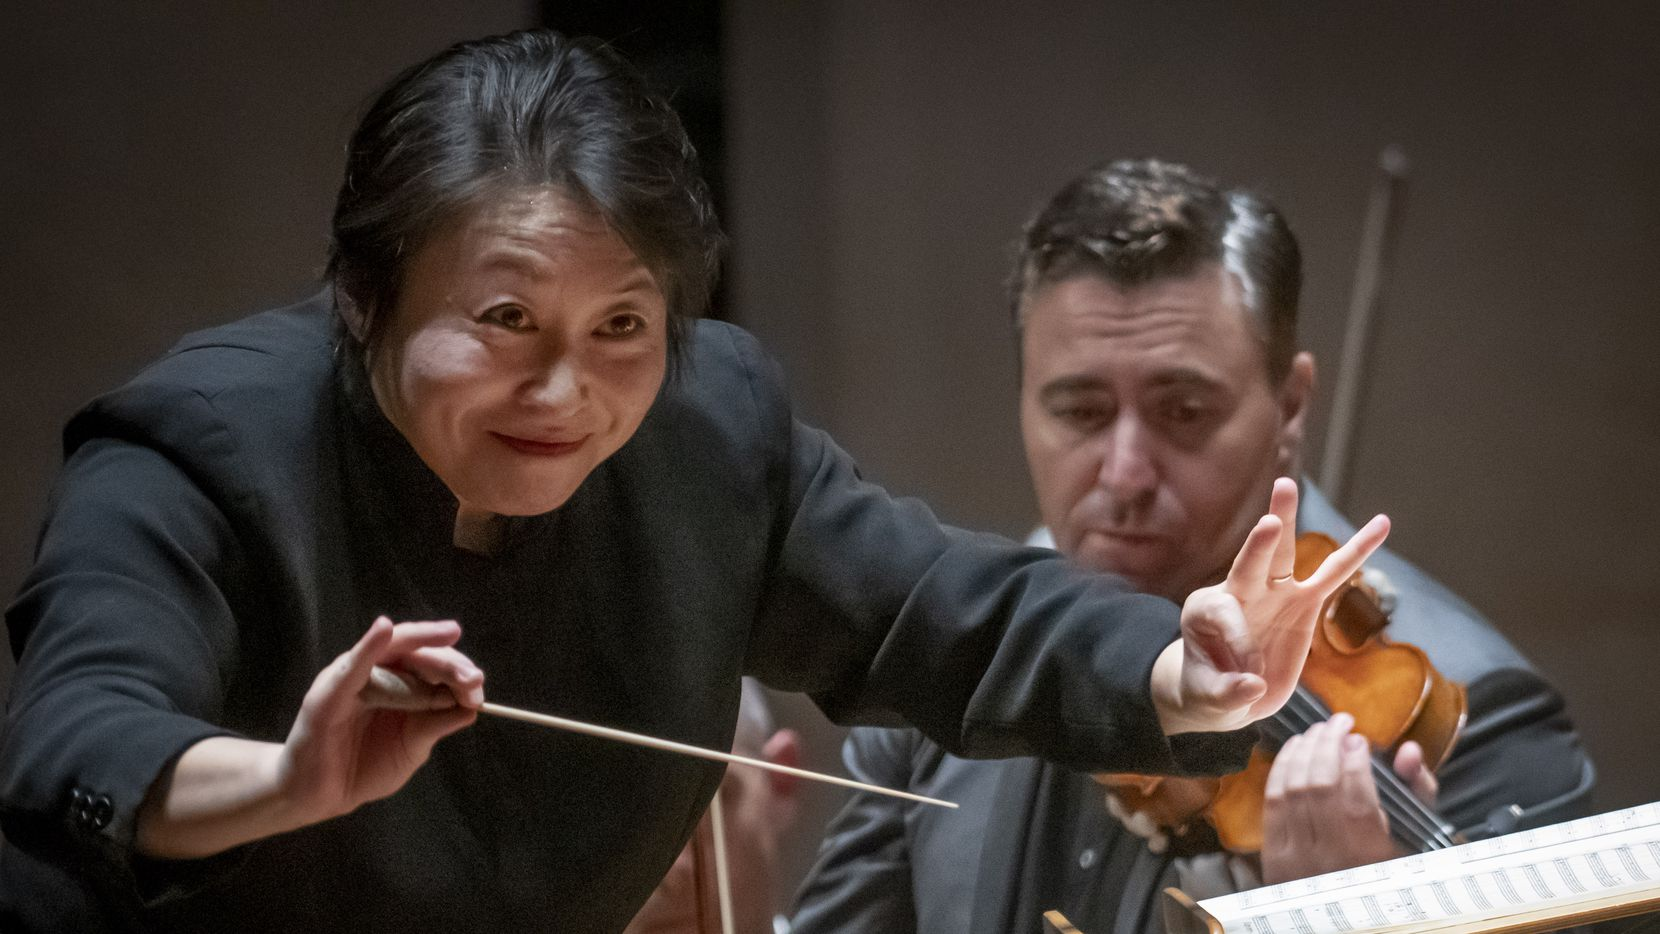 Guest conductor Xian Zhang and violinist Maxim Vengerov perform Max Bruch's 1866 G minor Violin Concerto with the Dallas Symphony Orchestra.